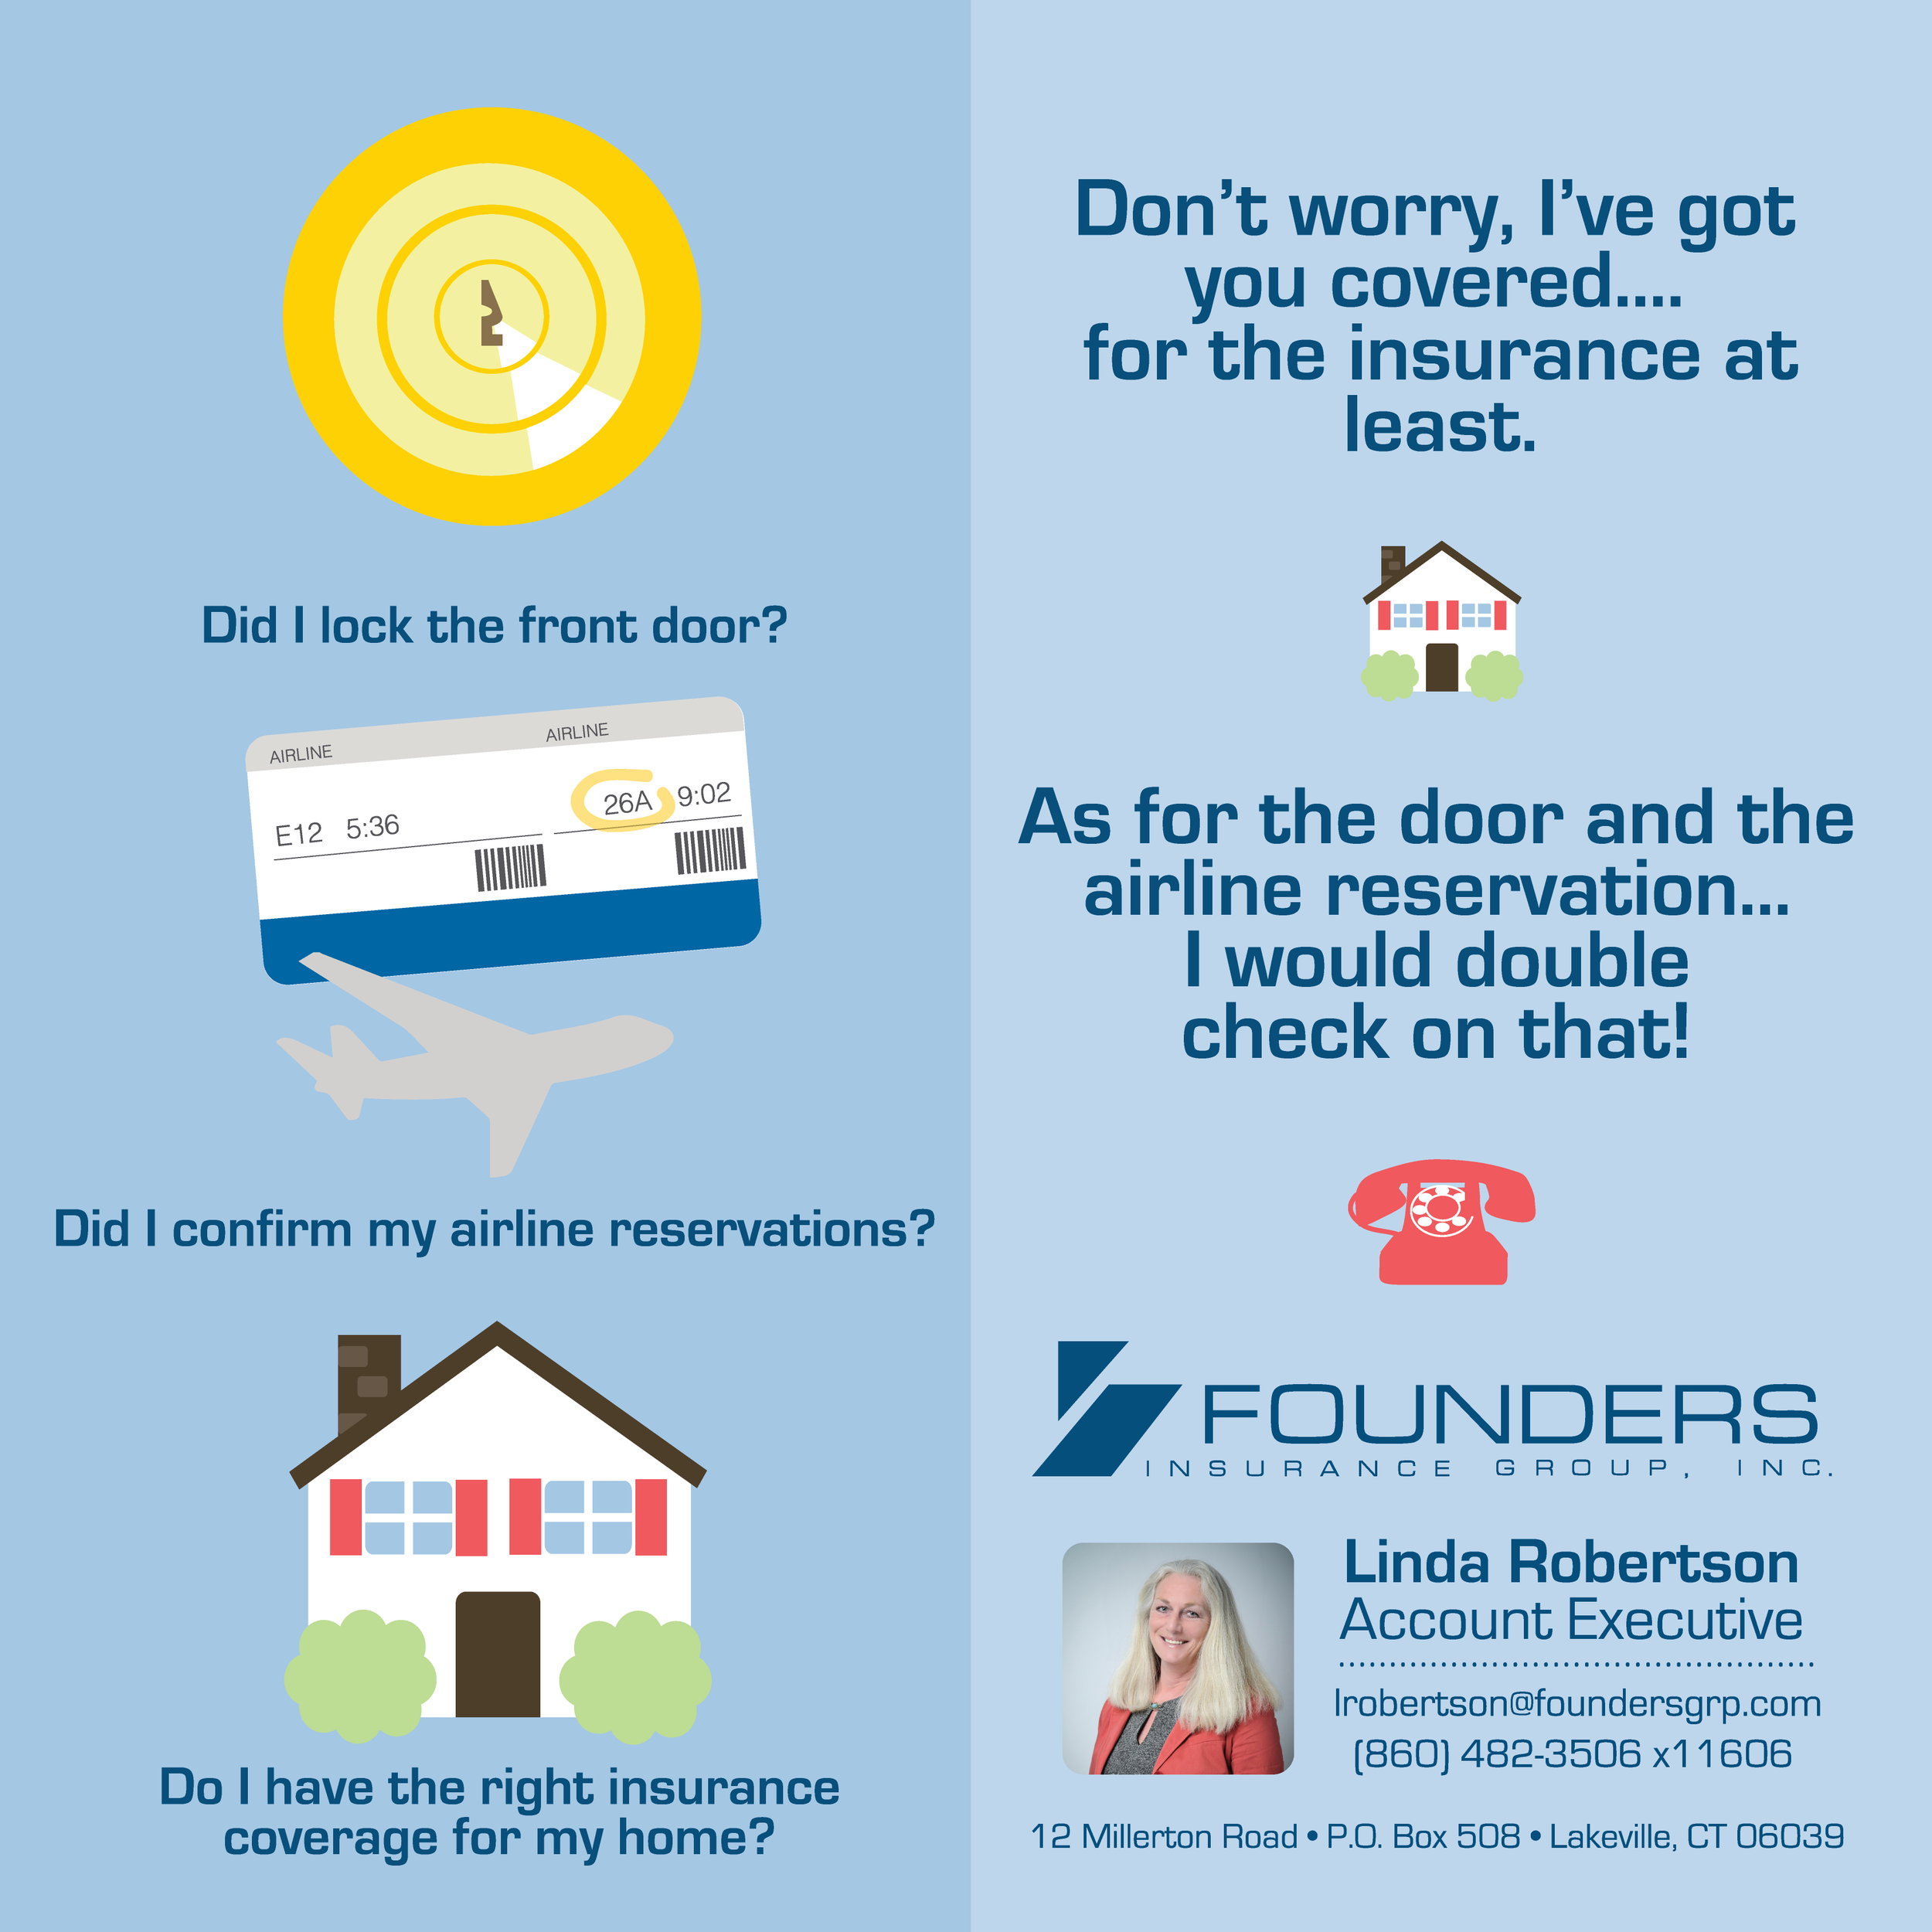 Founders Mailer 2 Inside-01.png